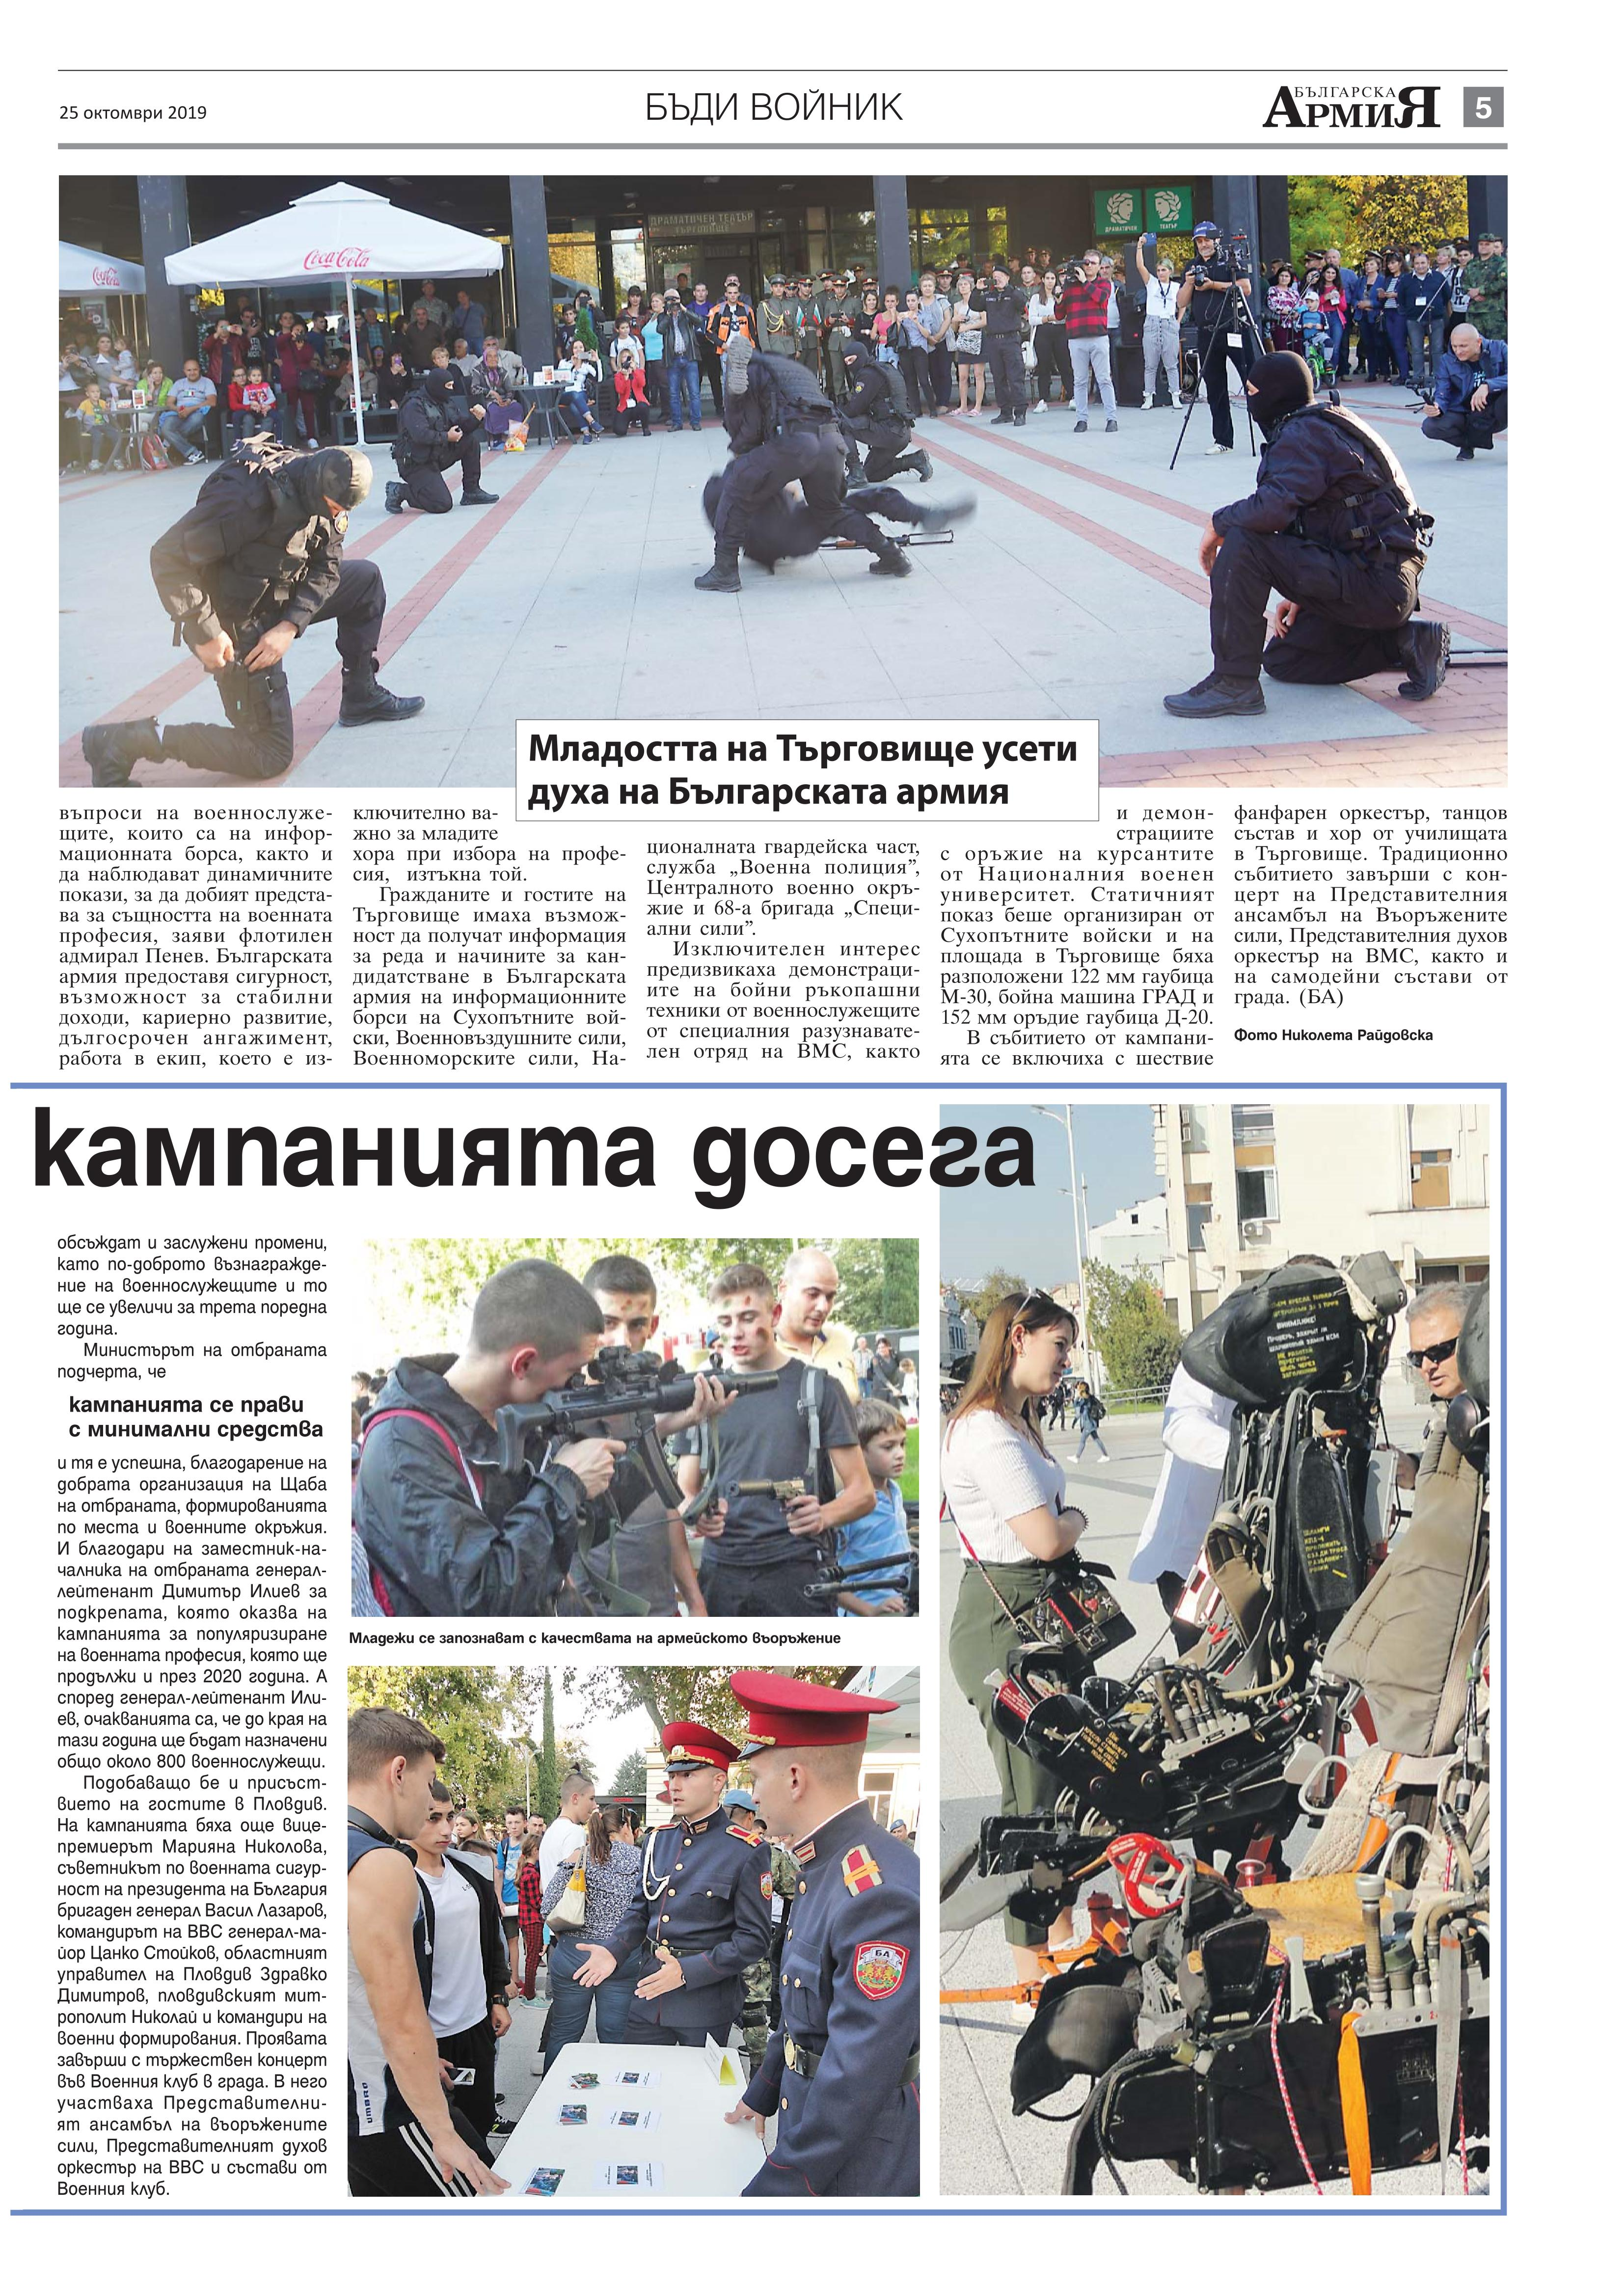 https://www.armymedia.bg/wp-content/uploads/2015/06/05.page1_-109.jpg